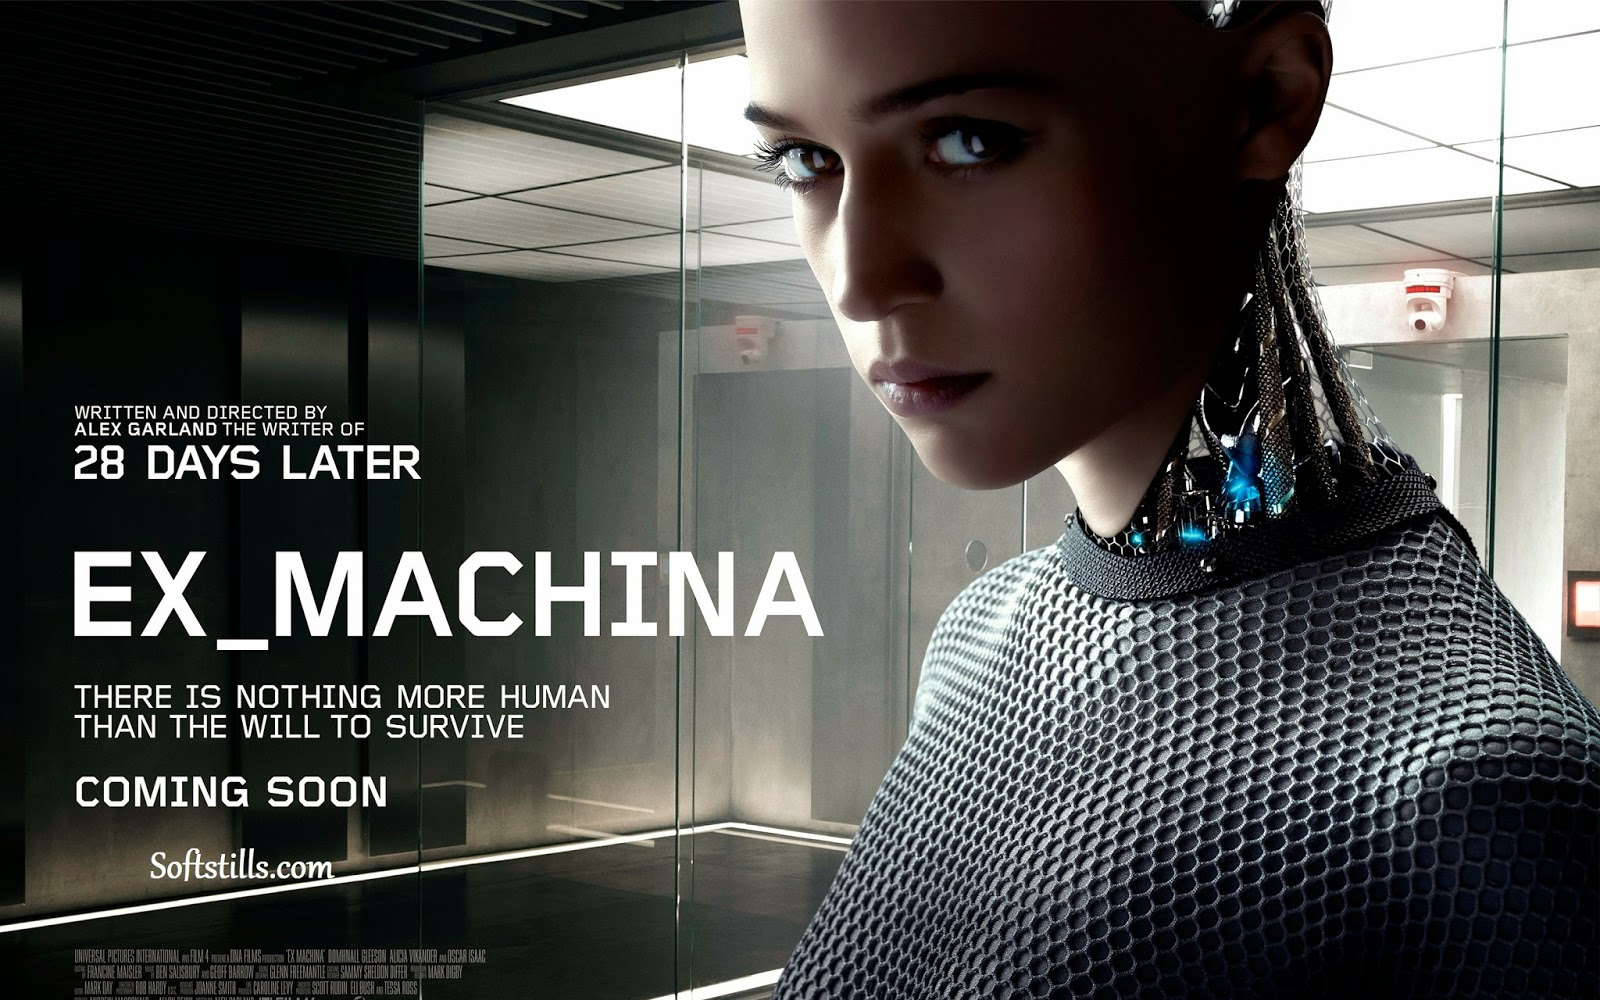 http://www.softstills.com/2014/10/ex-machina-2015-movie-wallpaper.html